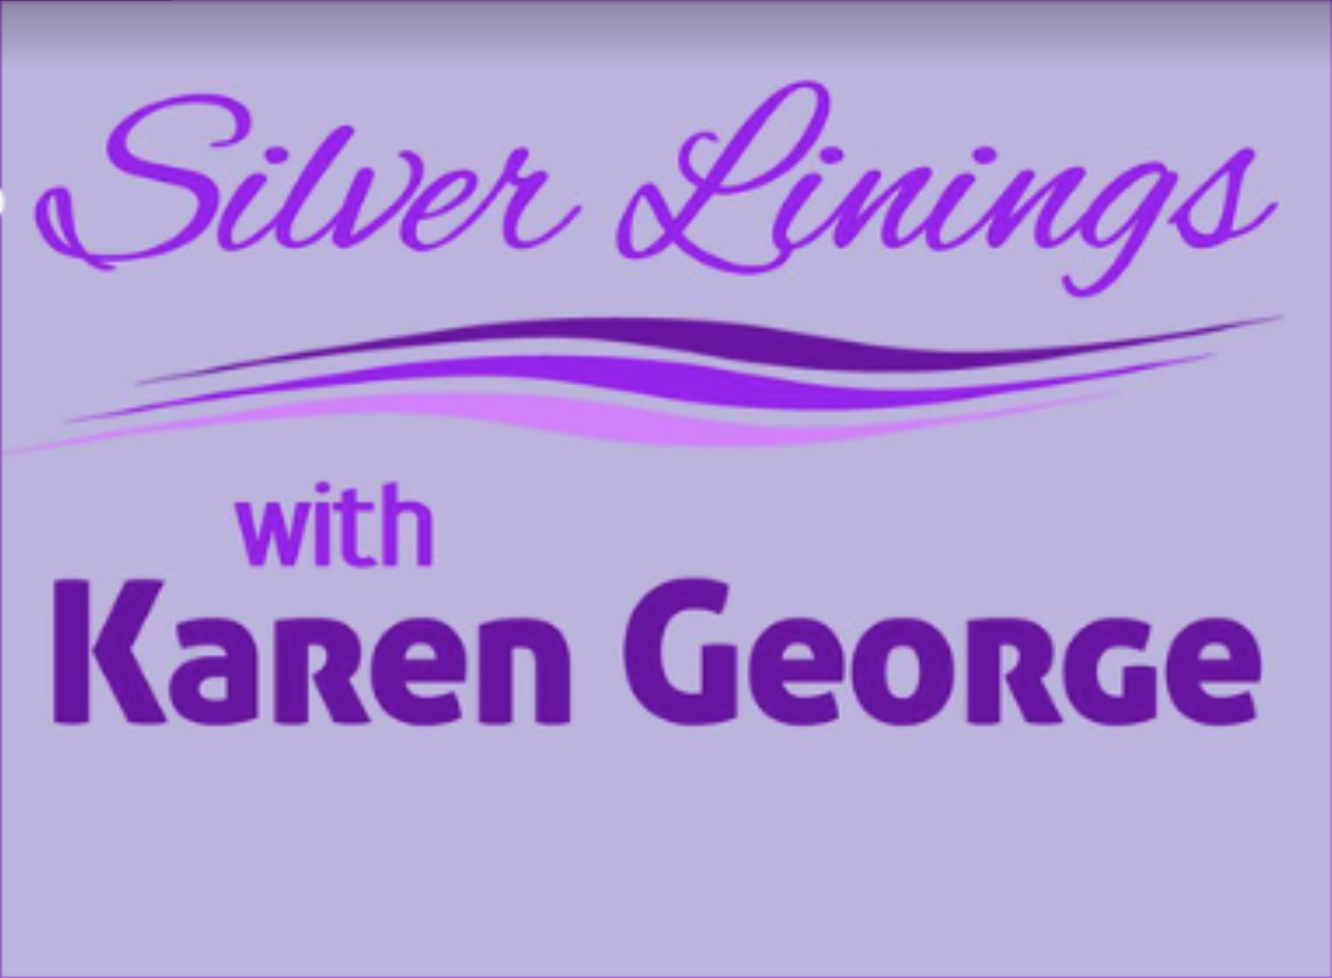 Family law attorney, and founder of Love, Money & the Law, Cindy Hide is a guest on the Silver Linings Podcast with Karen George—discussing cohabitation agreements and her family law practice in Houston, Texas.